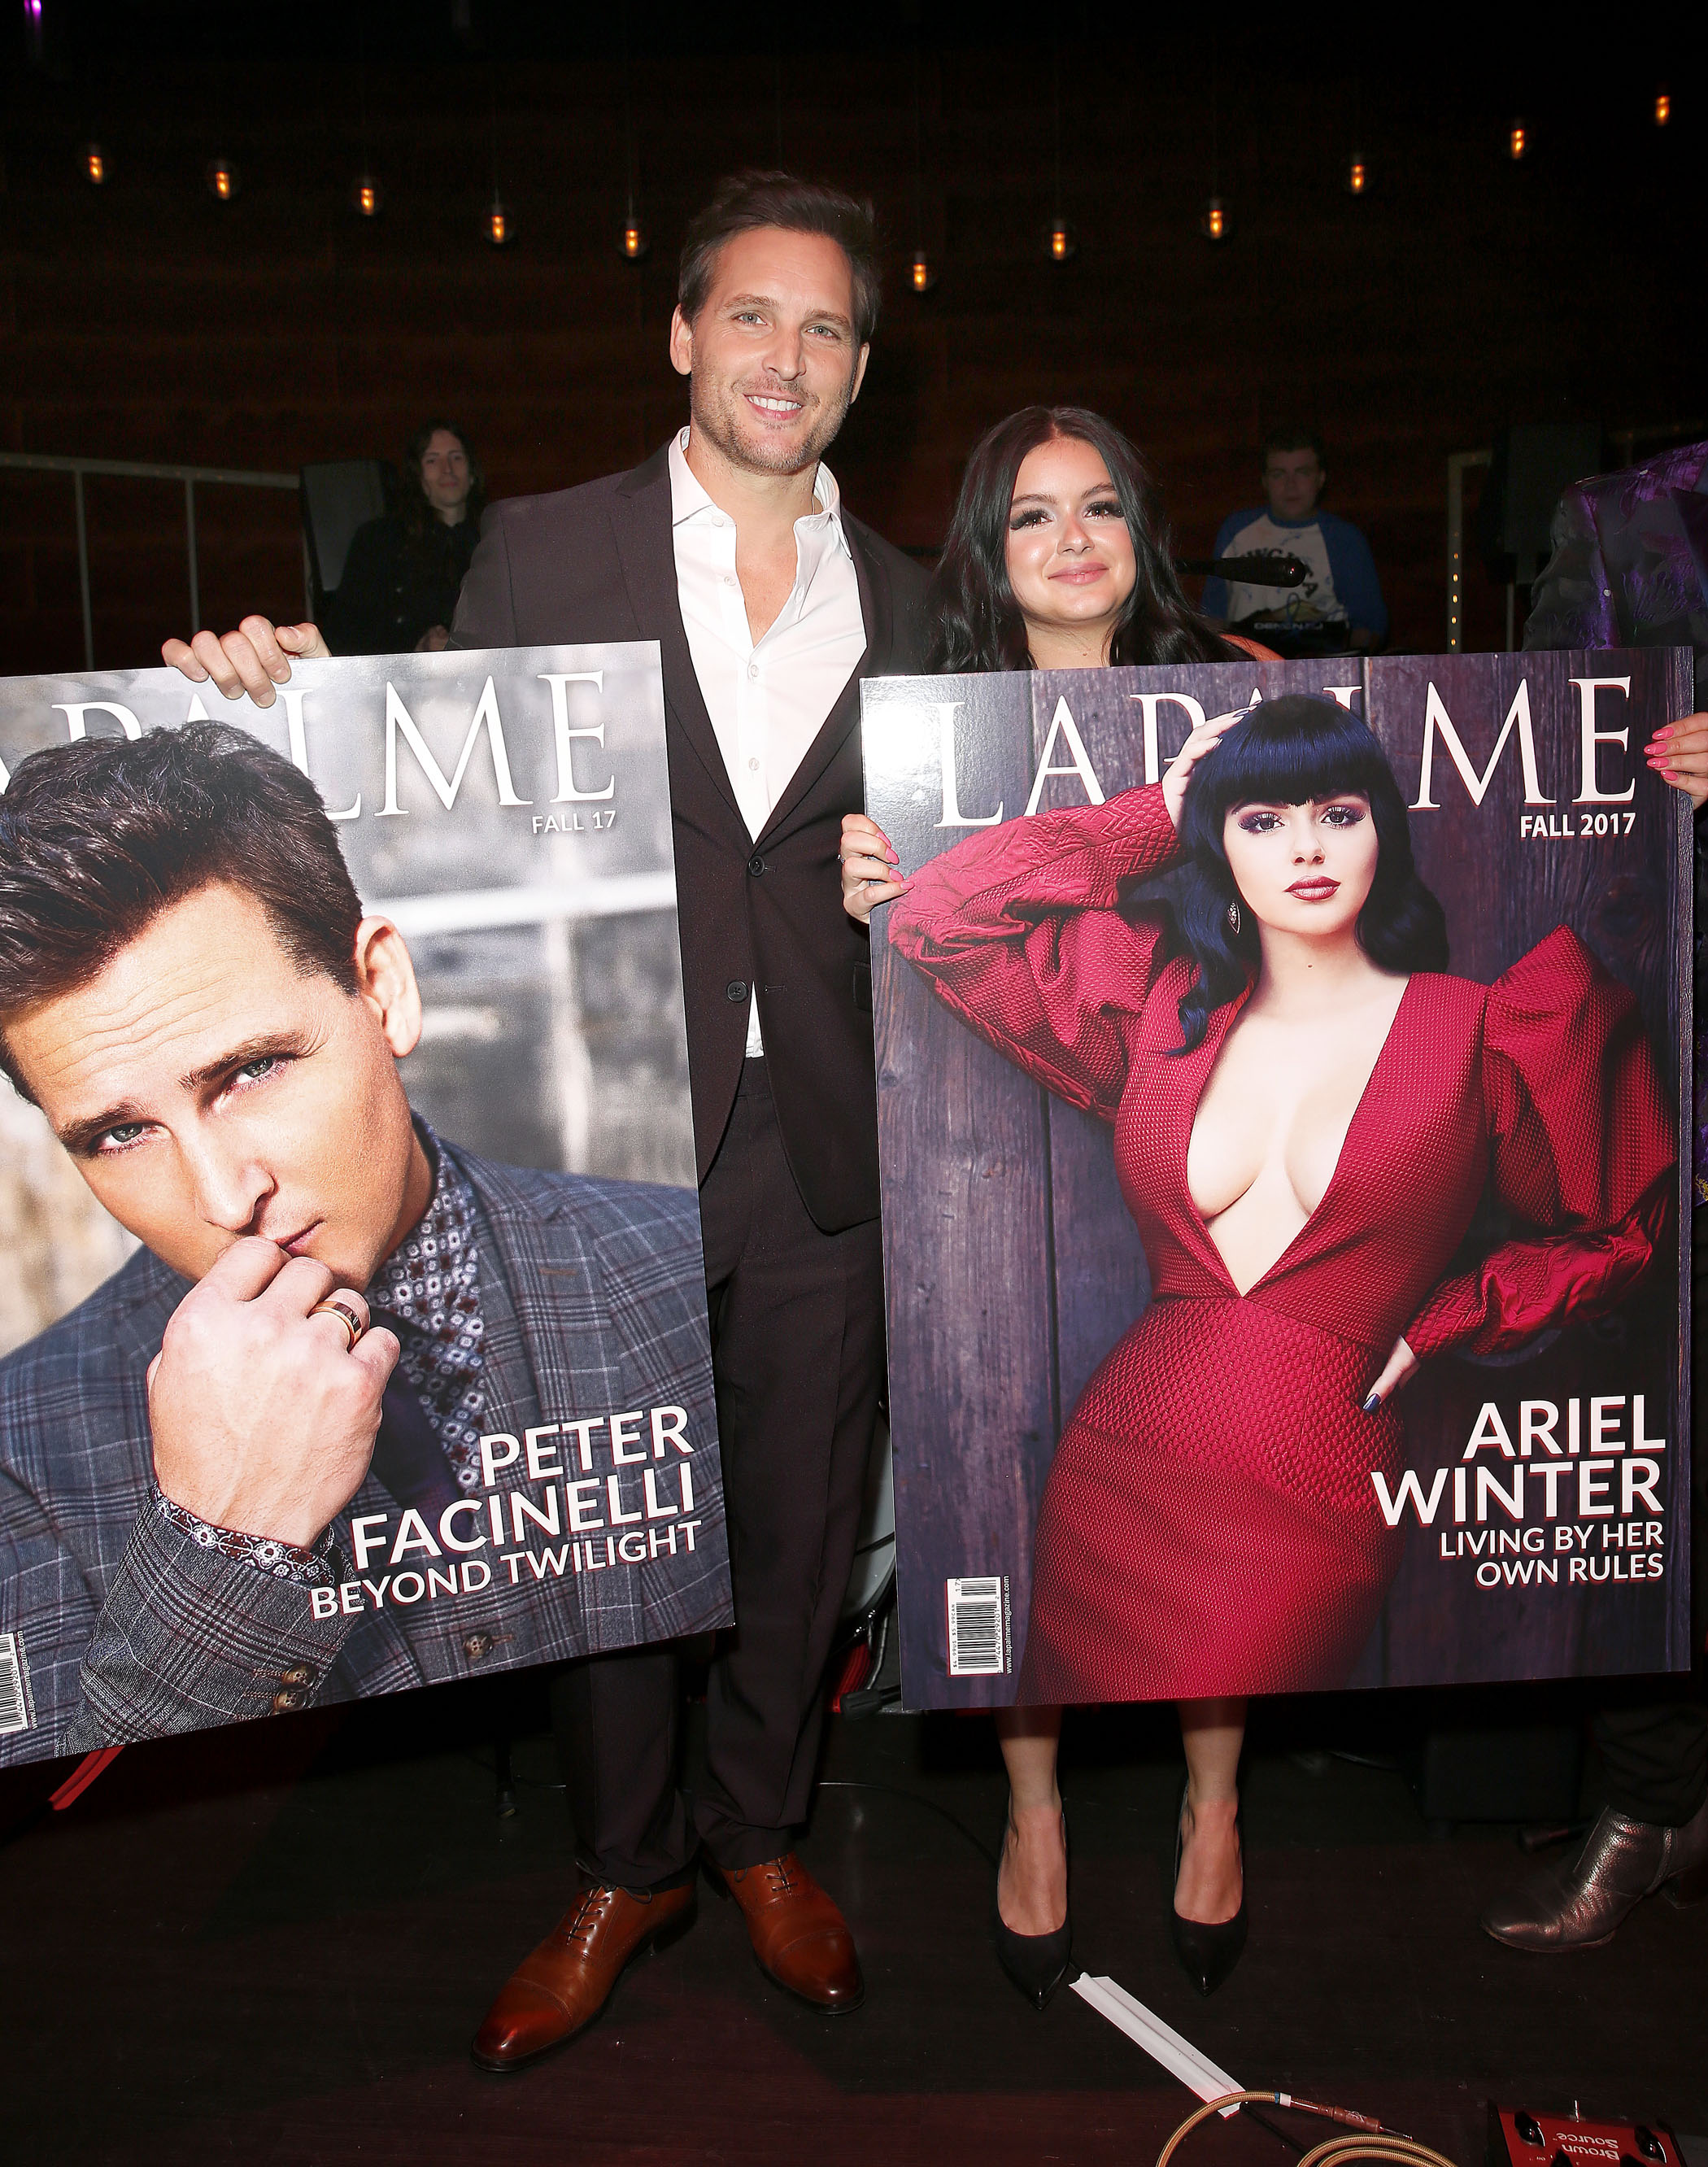 LAPALME Magazine Issue Launch Party Featuring Ariel Winter and Peter Facinelli